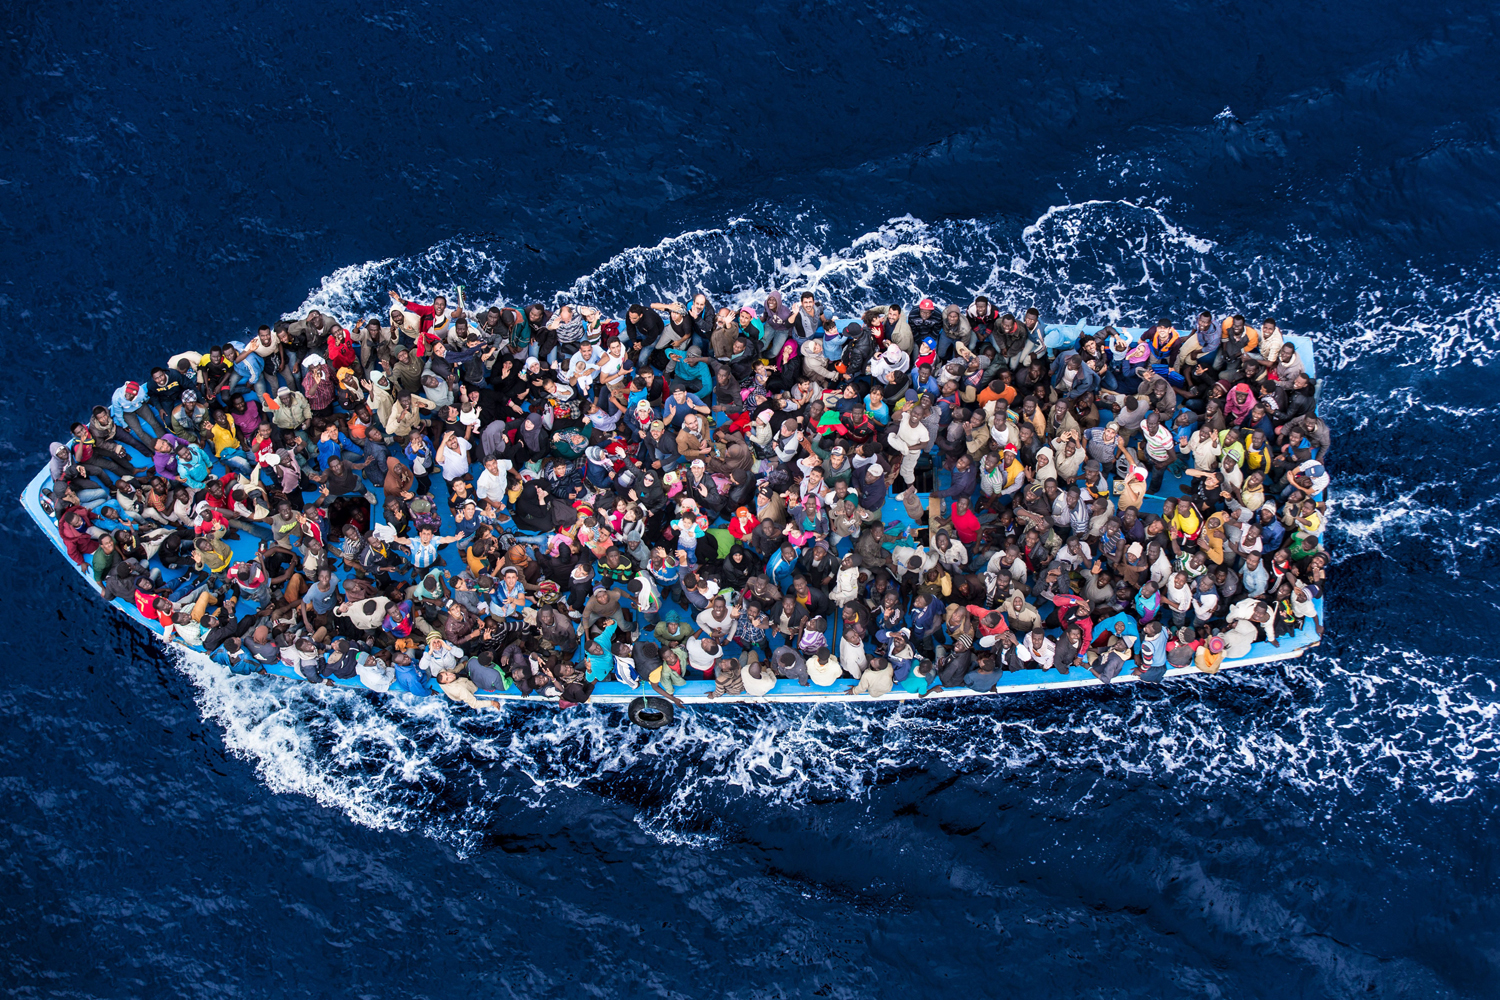 Italian navy rescues asylum seekers traveling by boat off the coast of Africa on the Mediterranean, June 7, 2014.